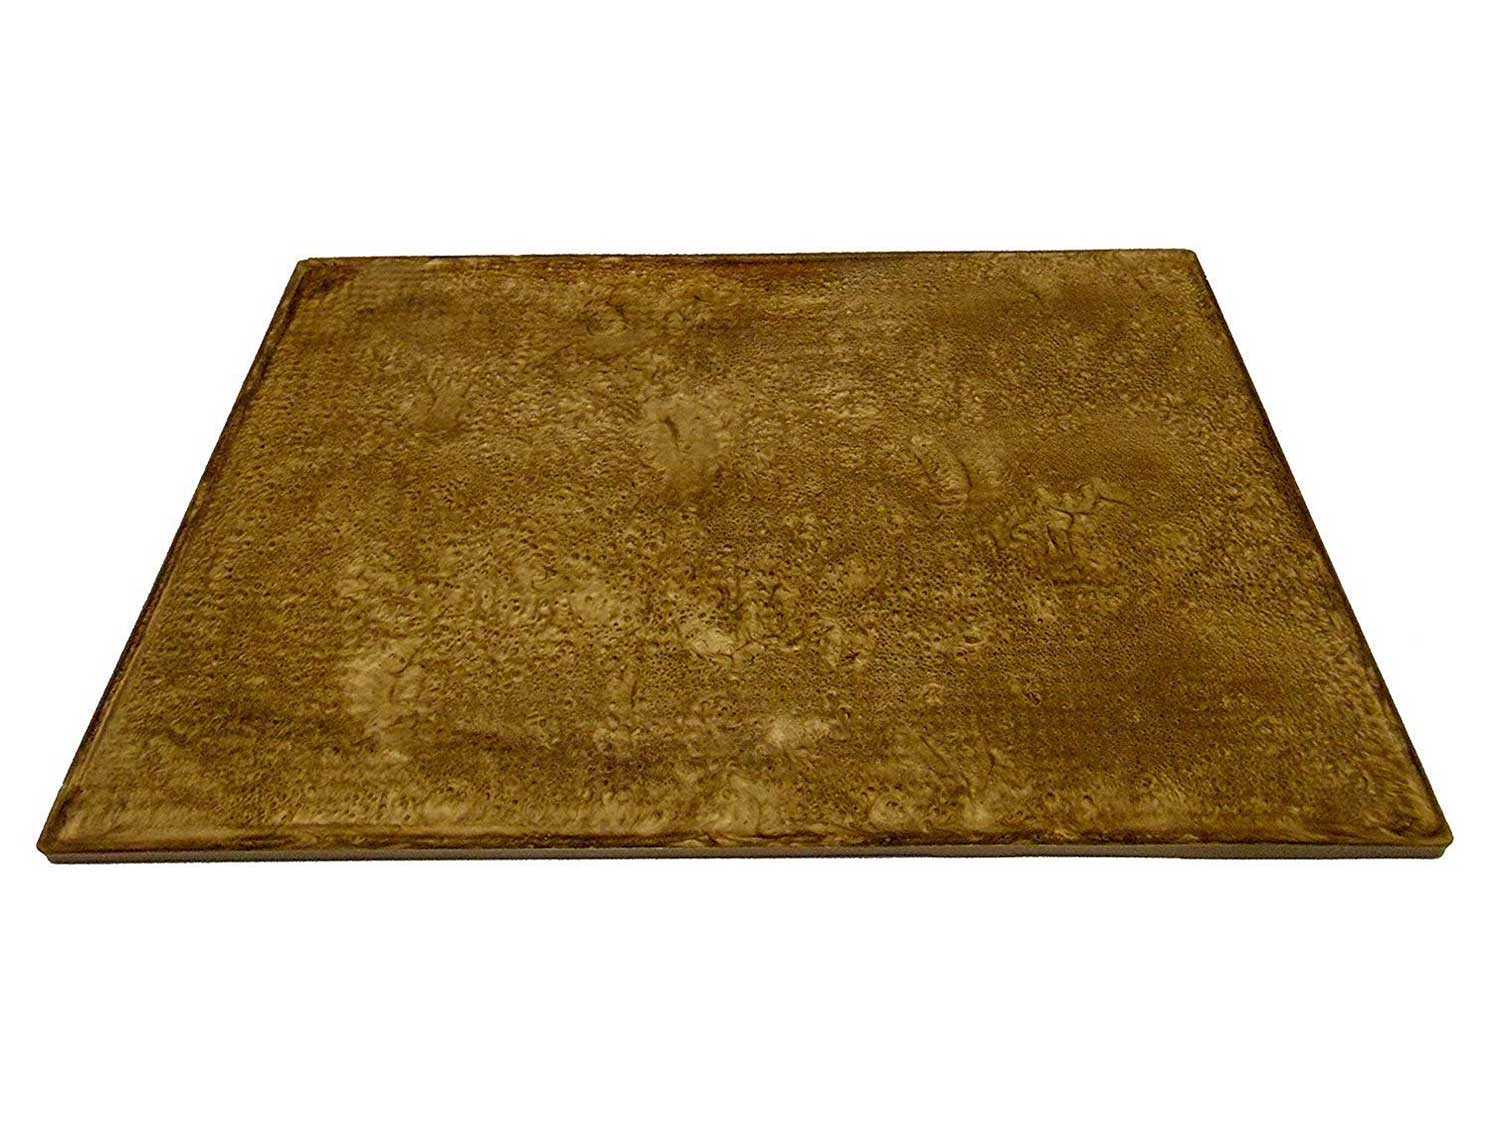 Bartender's Cocktail Metallic Bar Mat (Multiple Colors and Sizes)